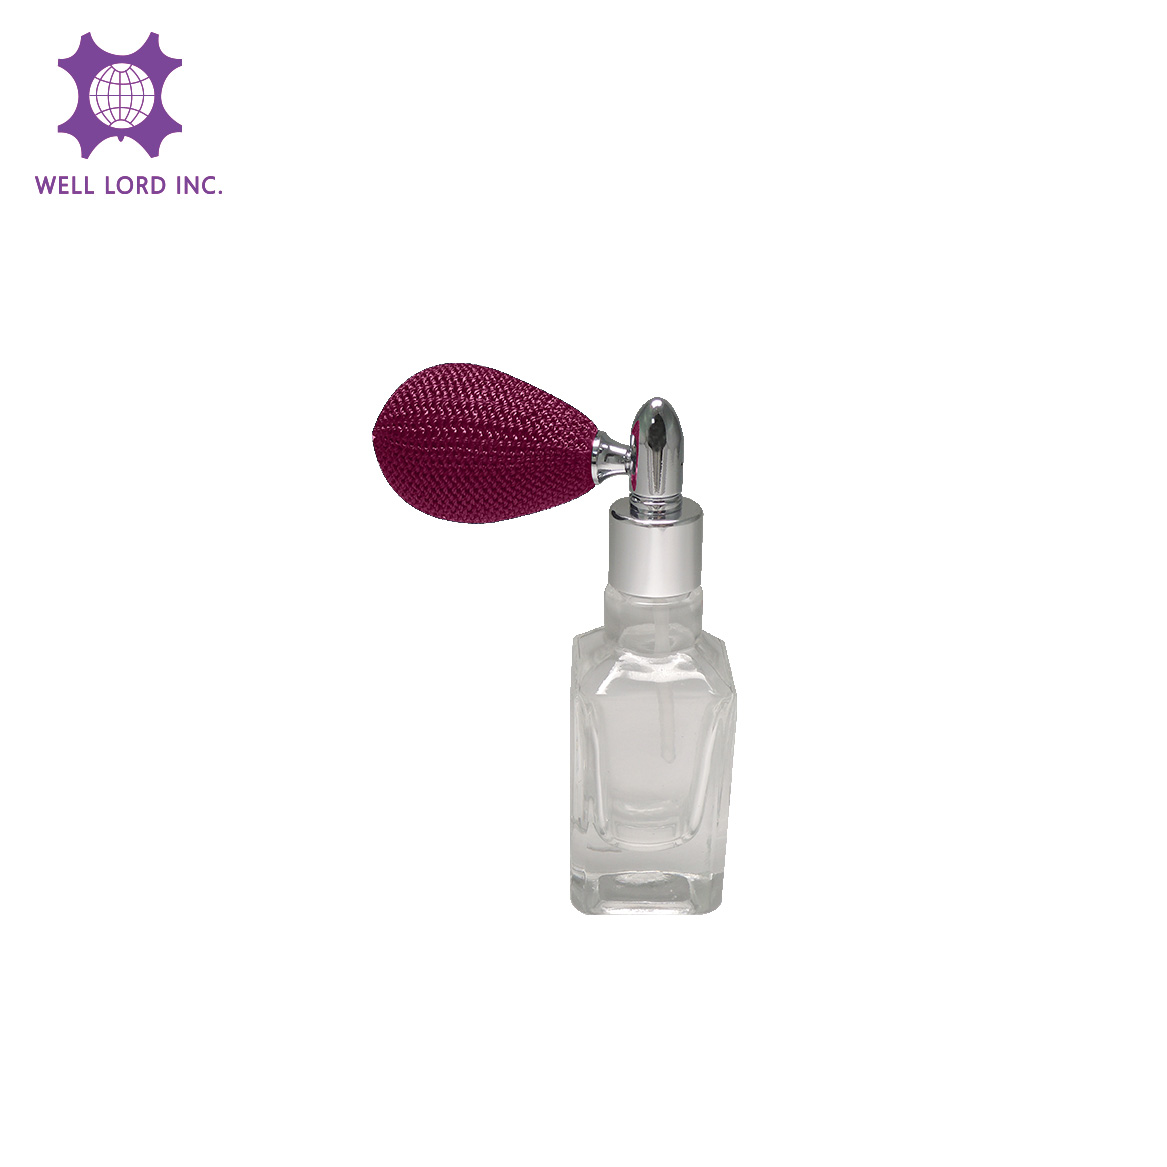 Splendid 13ml glass bottle with dark orchid purple bulb rectangular glass bottle sprayer